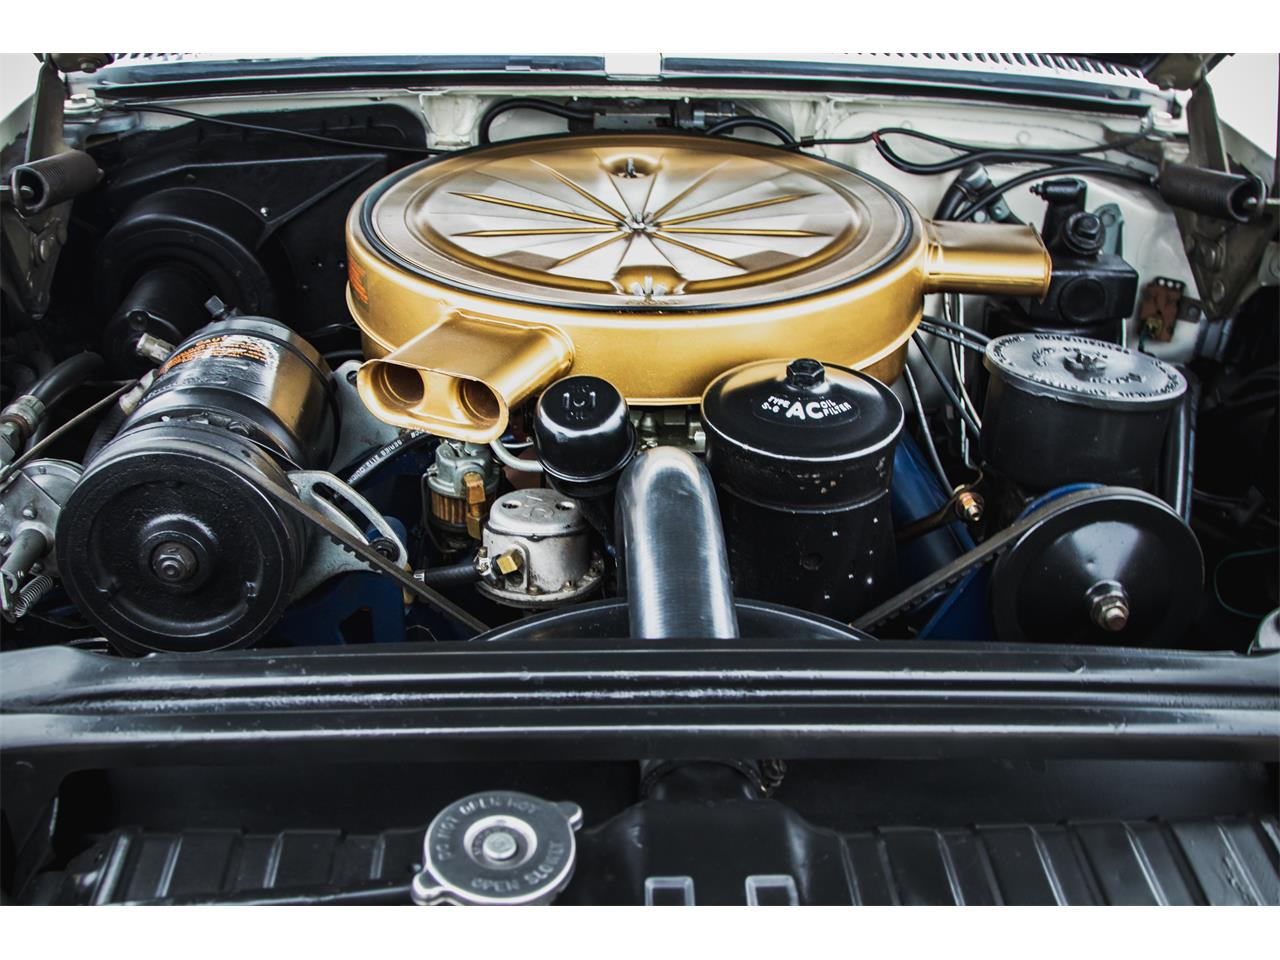 Large Picture of Classic 1958 Cadillac Eldorado located in California - $67,900.00 Offered by Radwan Classic Cars - P4QT